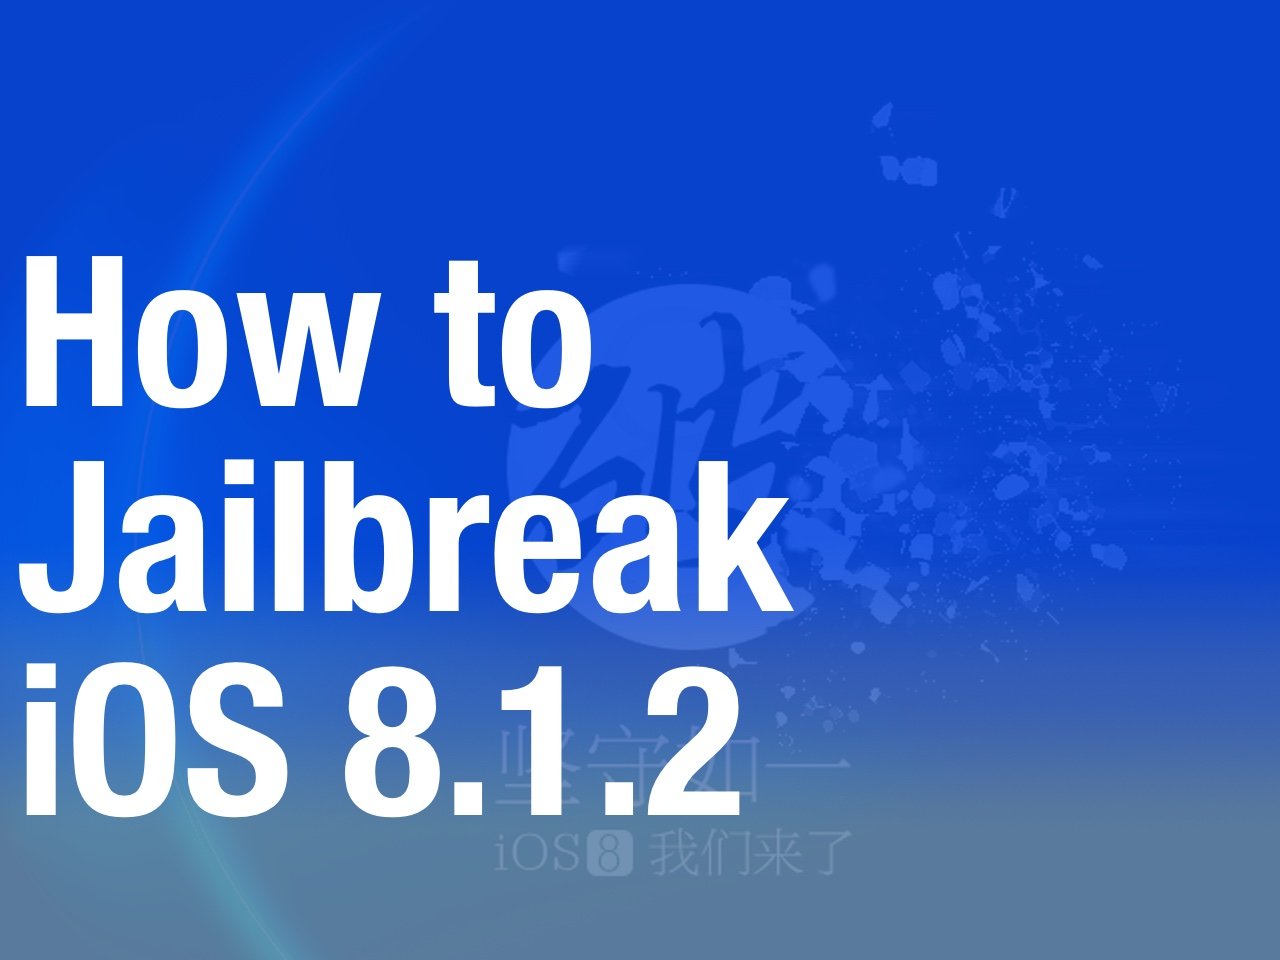 How to jailbreak iOS 8.1.2